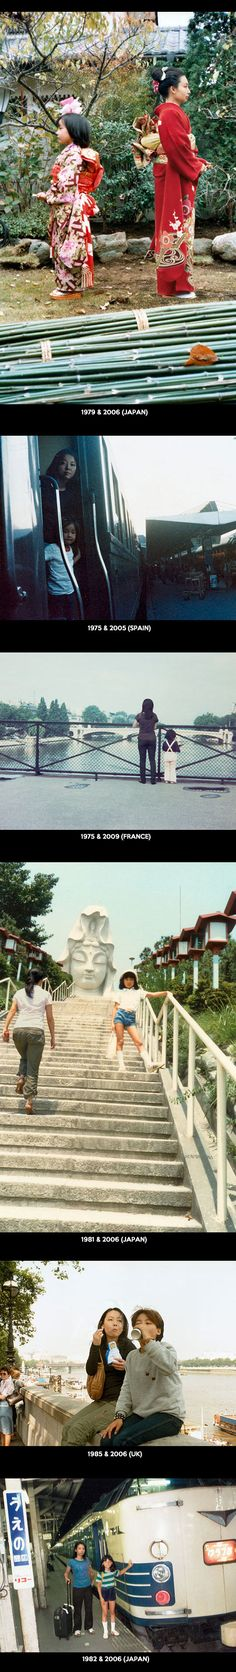 Cool Japanese photographer time travel photos, Part 2.